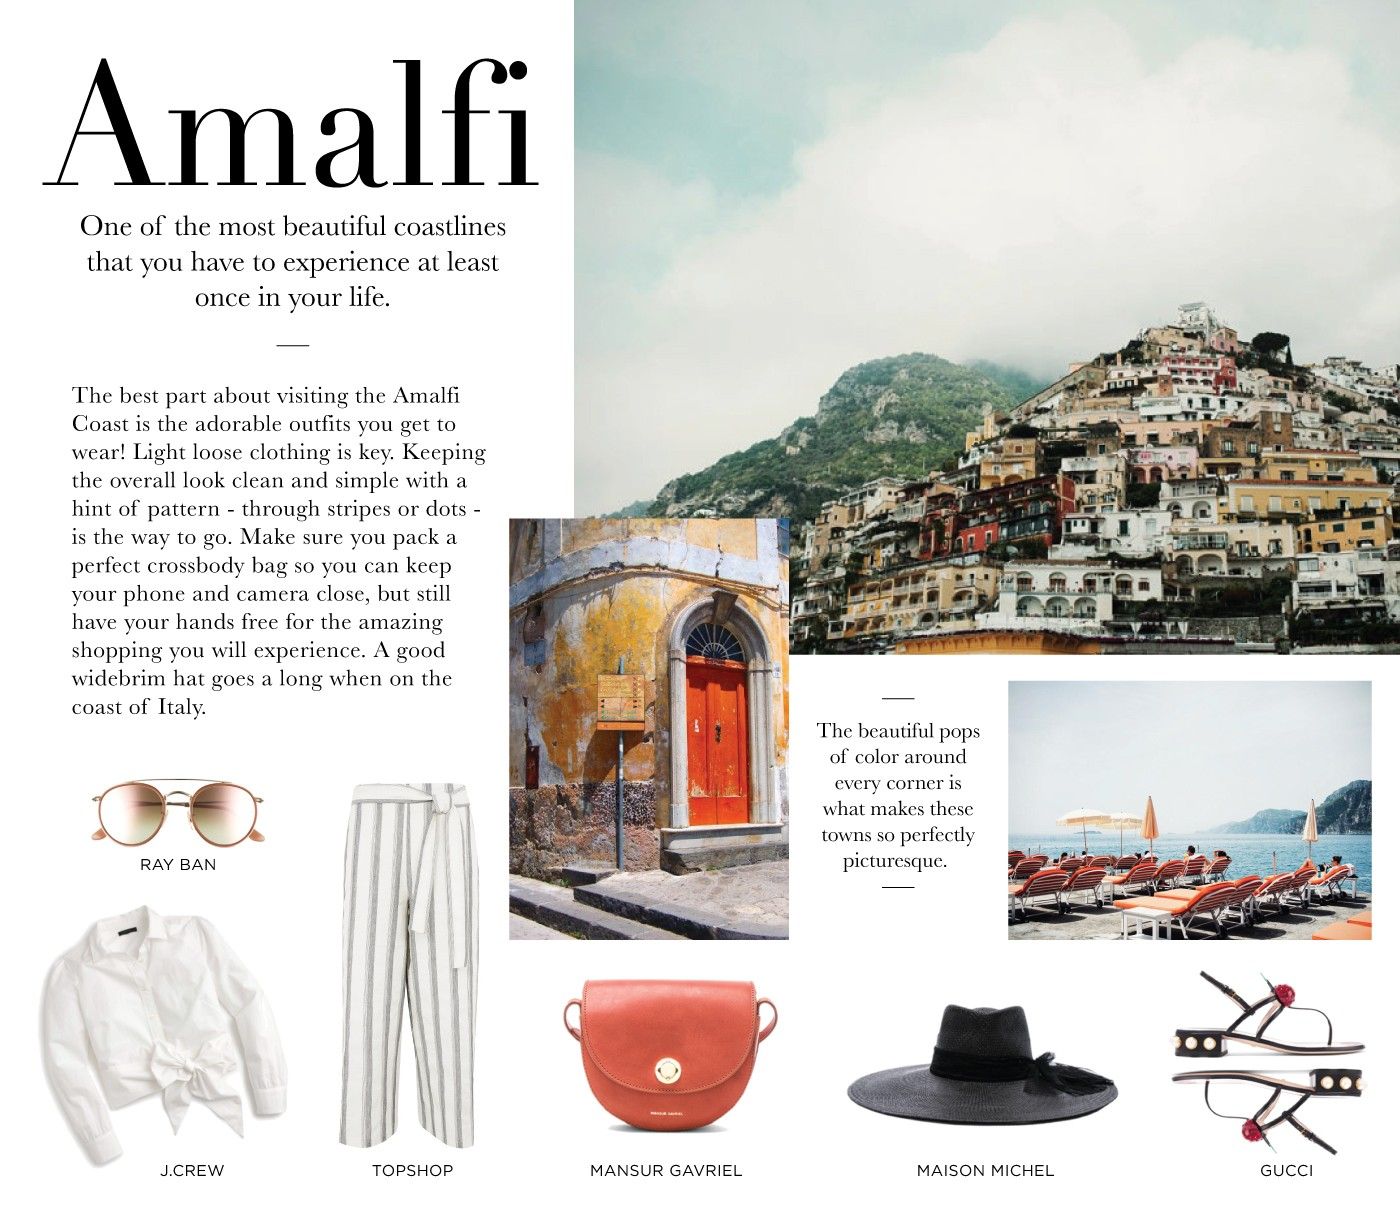 Take Me To: Amalfi - Sincerely Jules